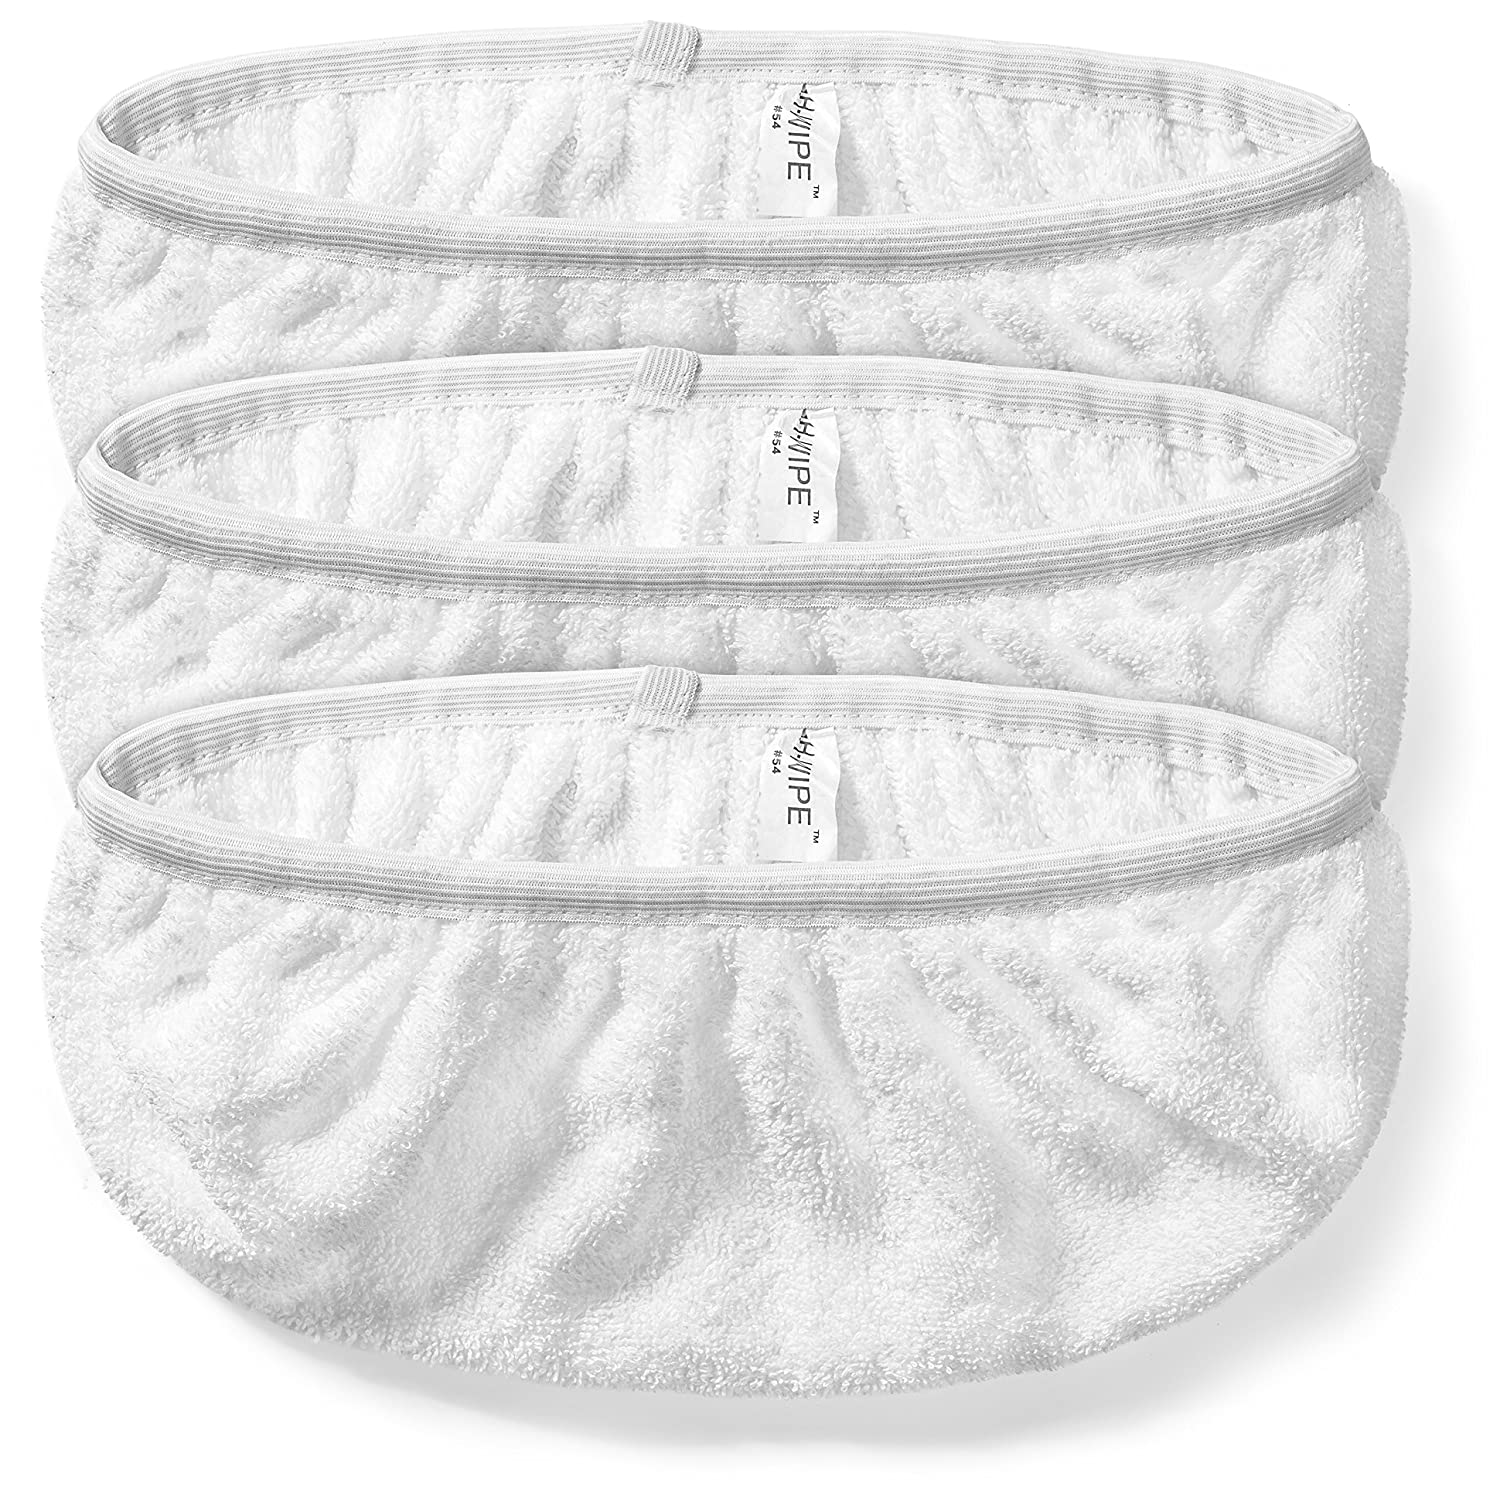 SH-WIPE TERRY CLOTH MOP COVER FOR SH-MOP, 3 PACK SH-MOP by Comsentech SYNCHKG004419